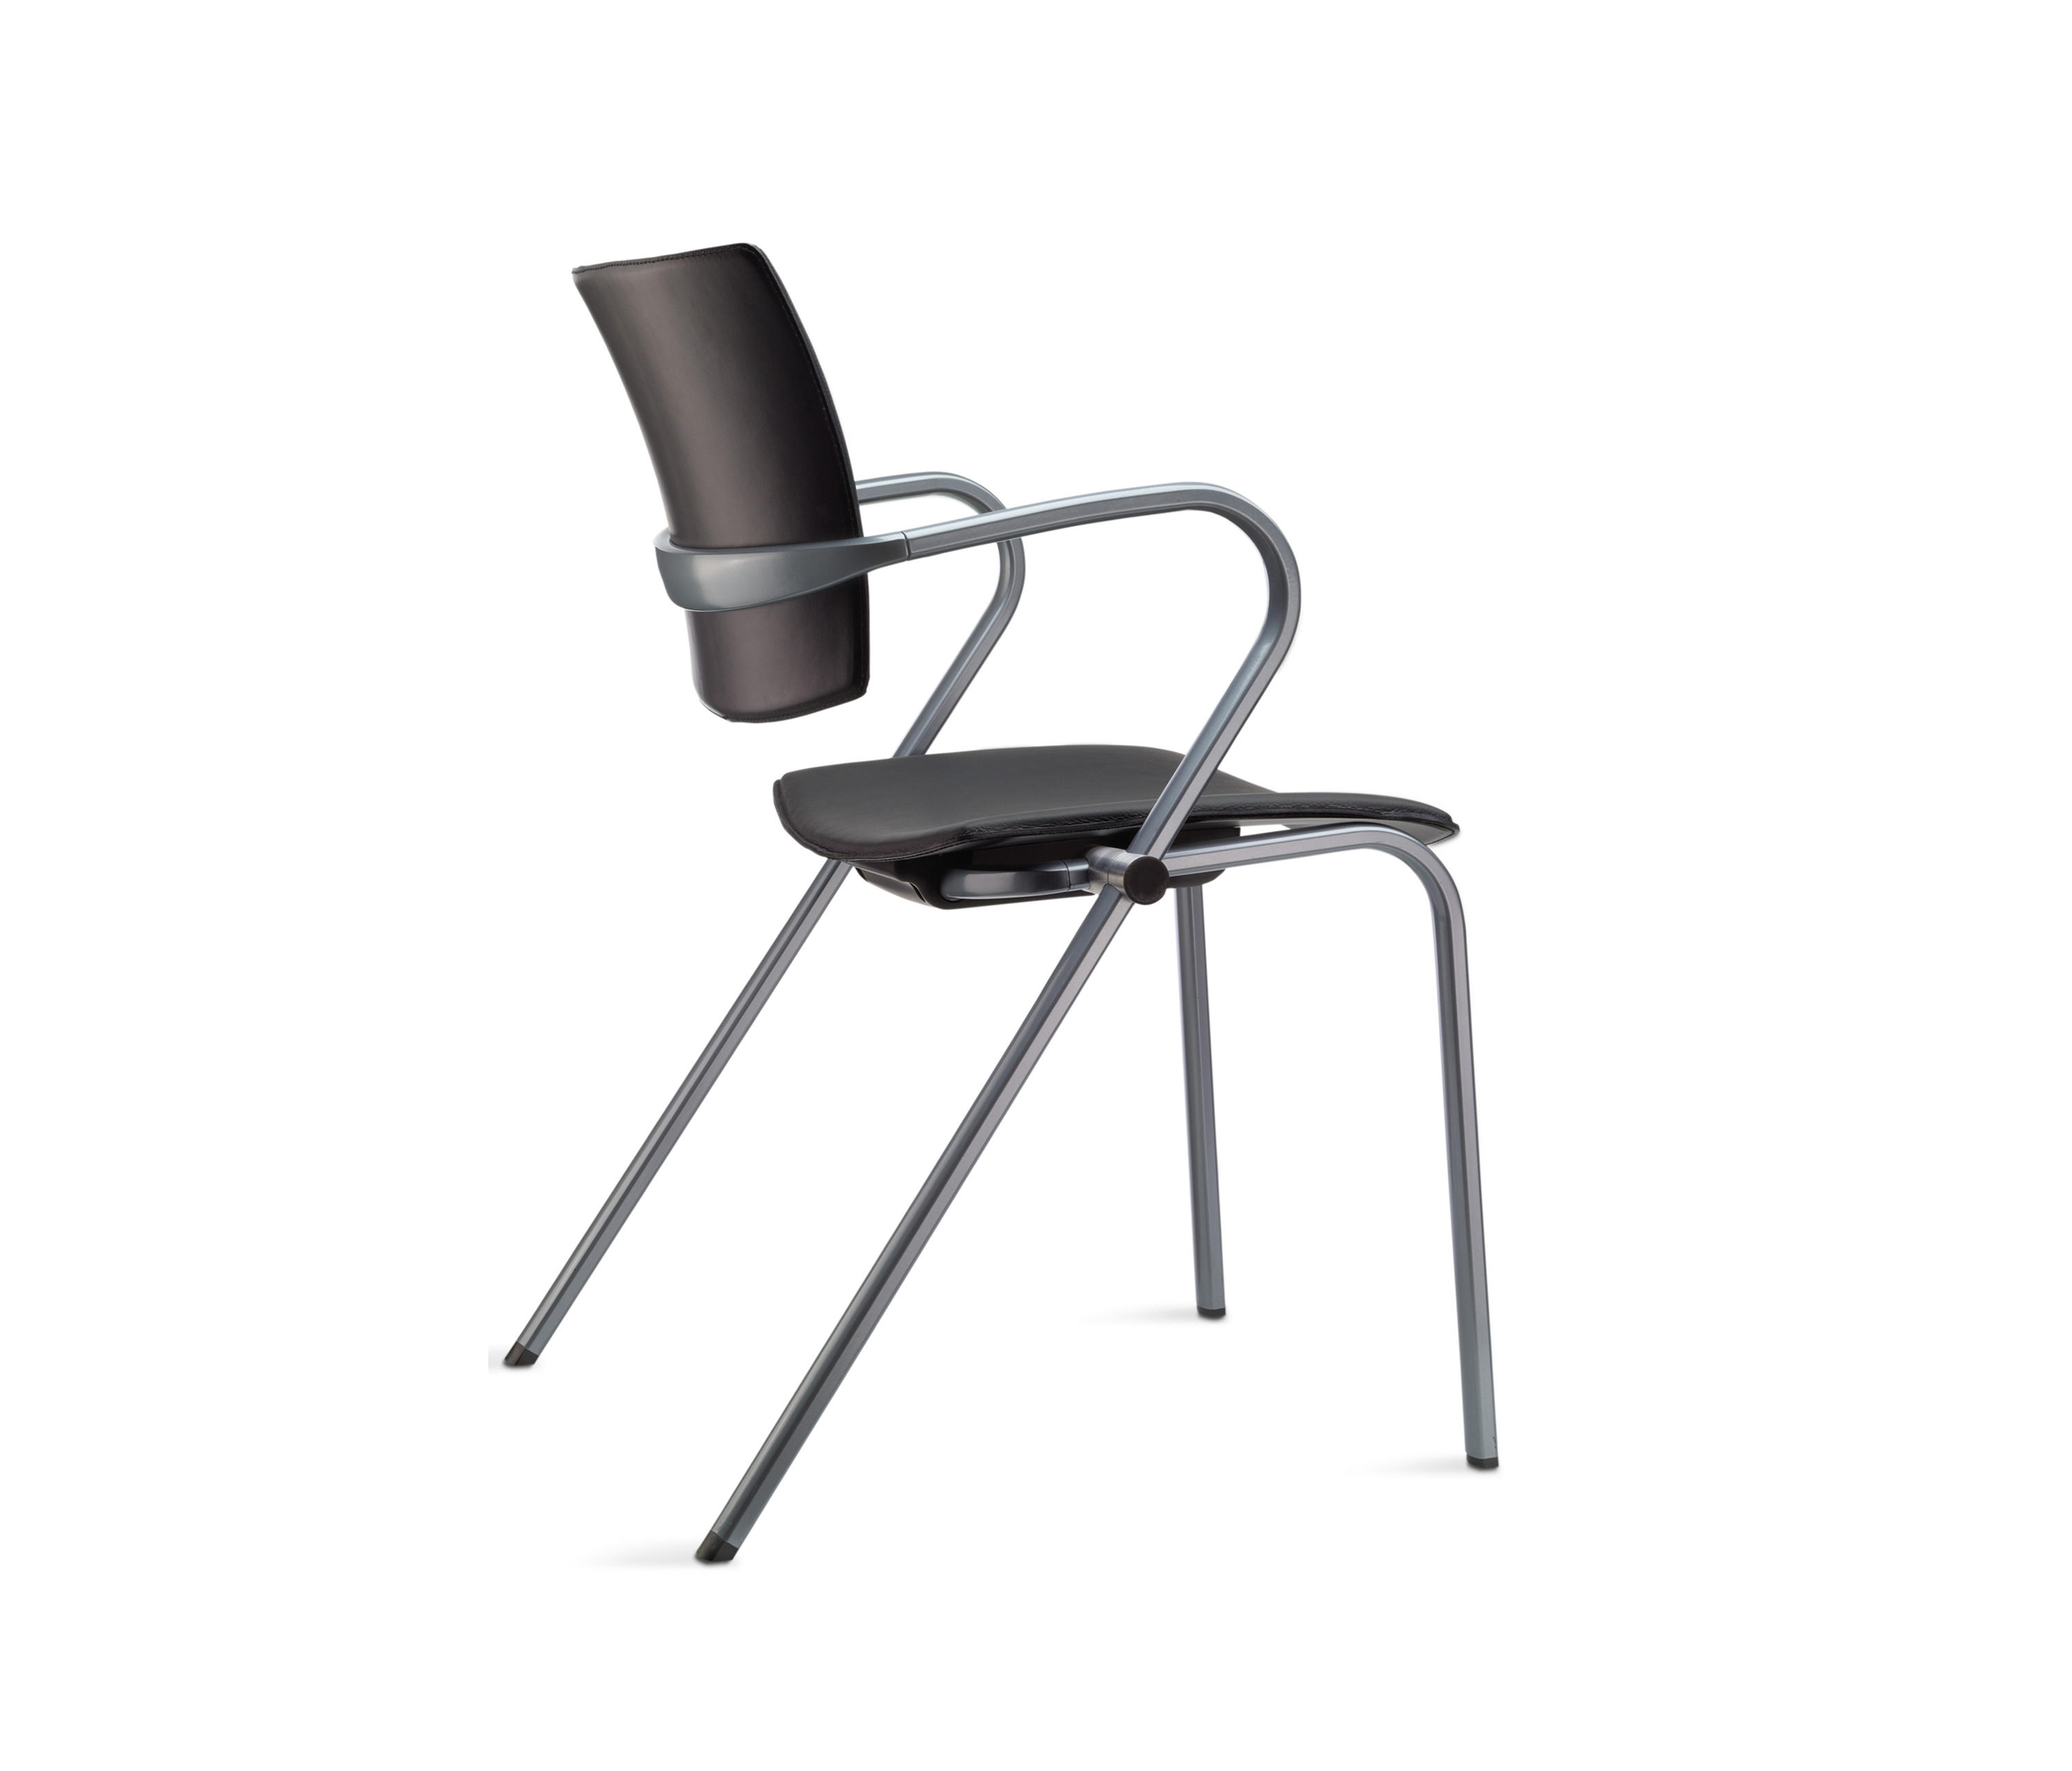 ... 430 Delta Plus by FIGUERAS | Chairs ...  sc 1 st  Architonic & 430 DELTA PLUS - Chairs from FIGUERAS | Architonic